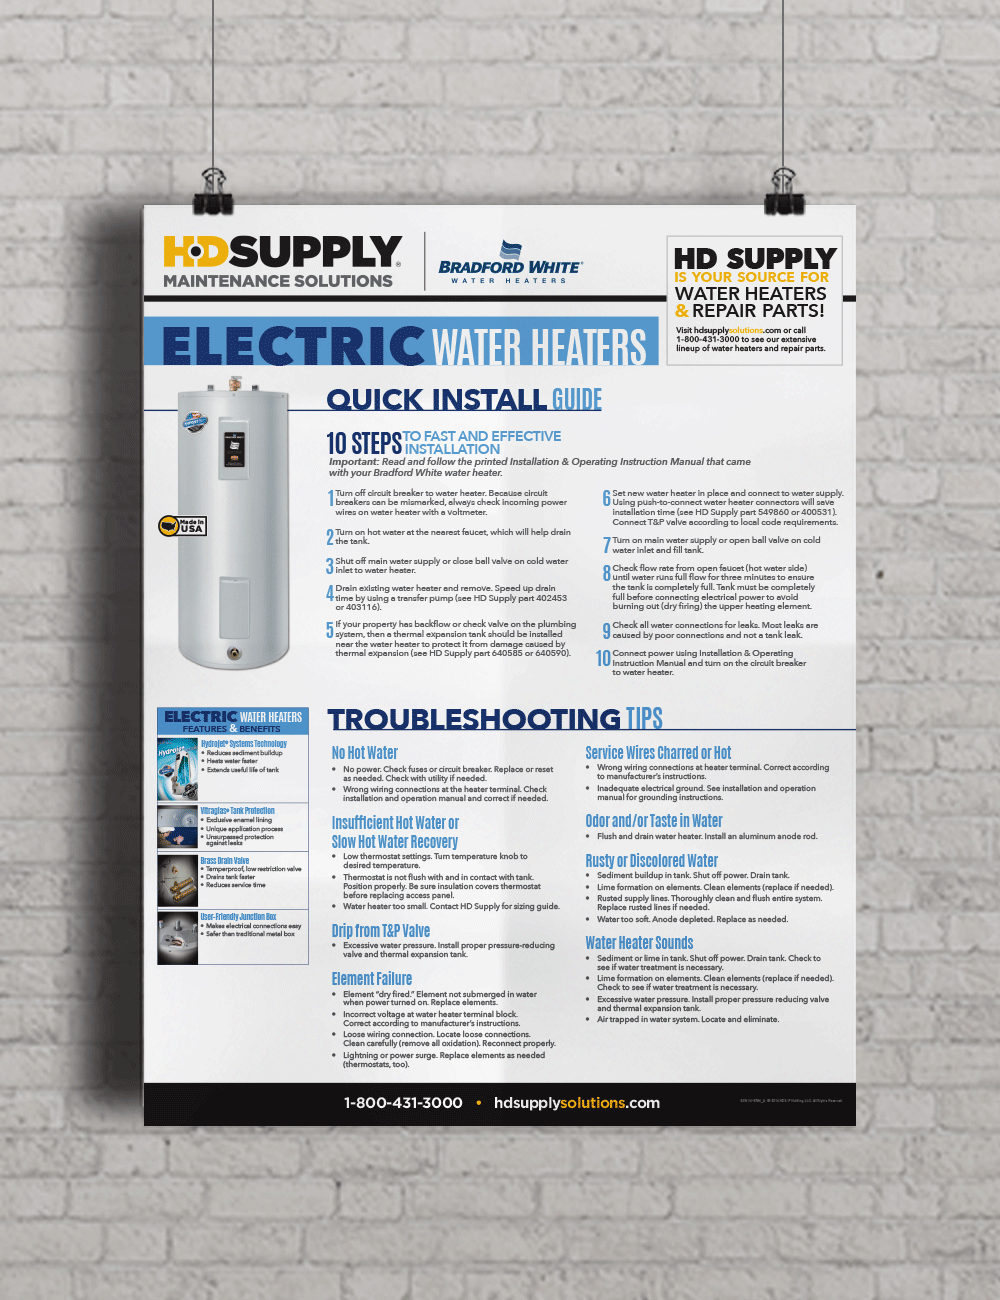 Bradford White Electric Water Heater info poster